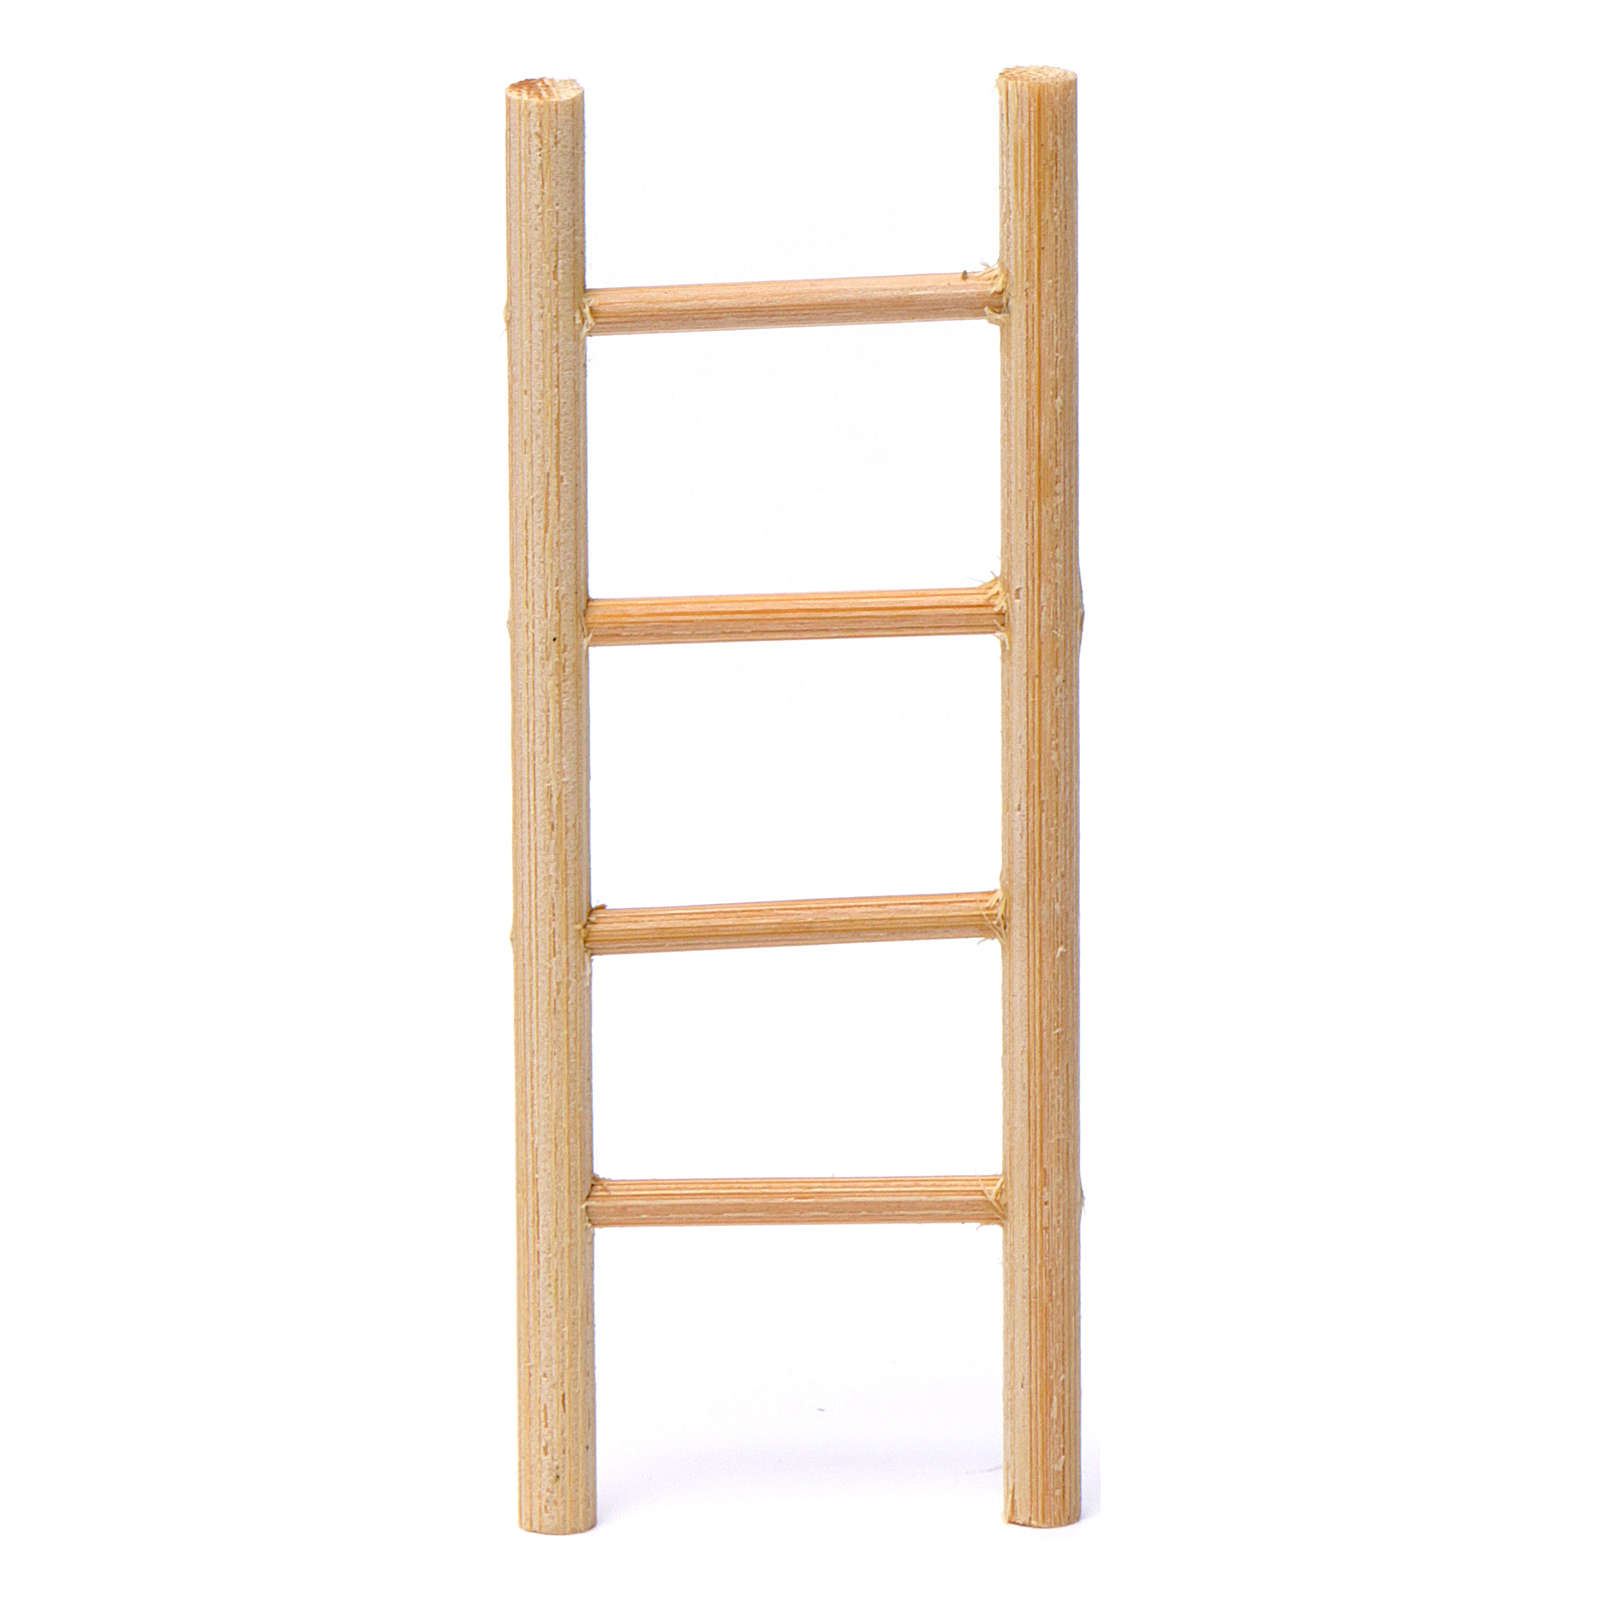 Wooden ladder with 4 rungs 10x5 cm for Nativity Scene 8-9 cm 4